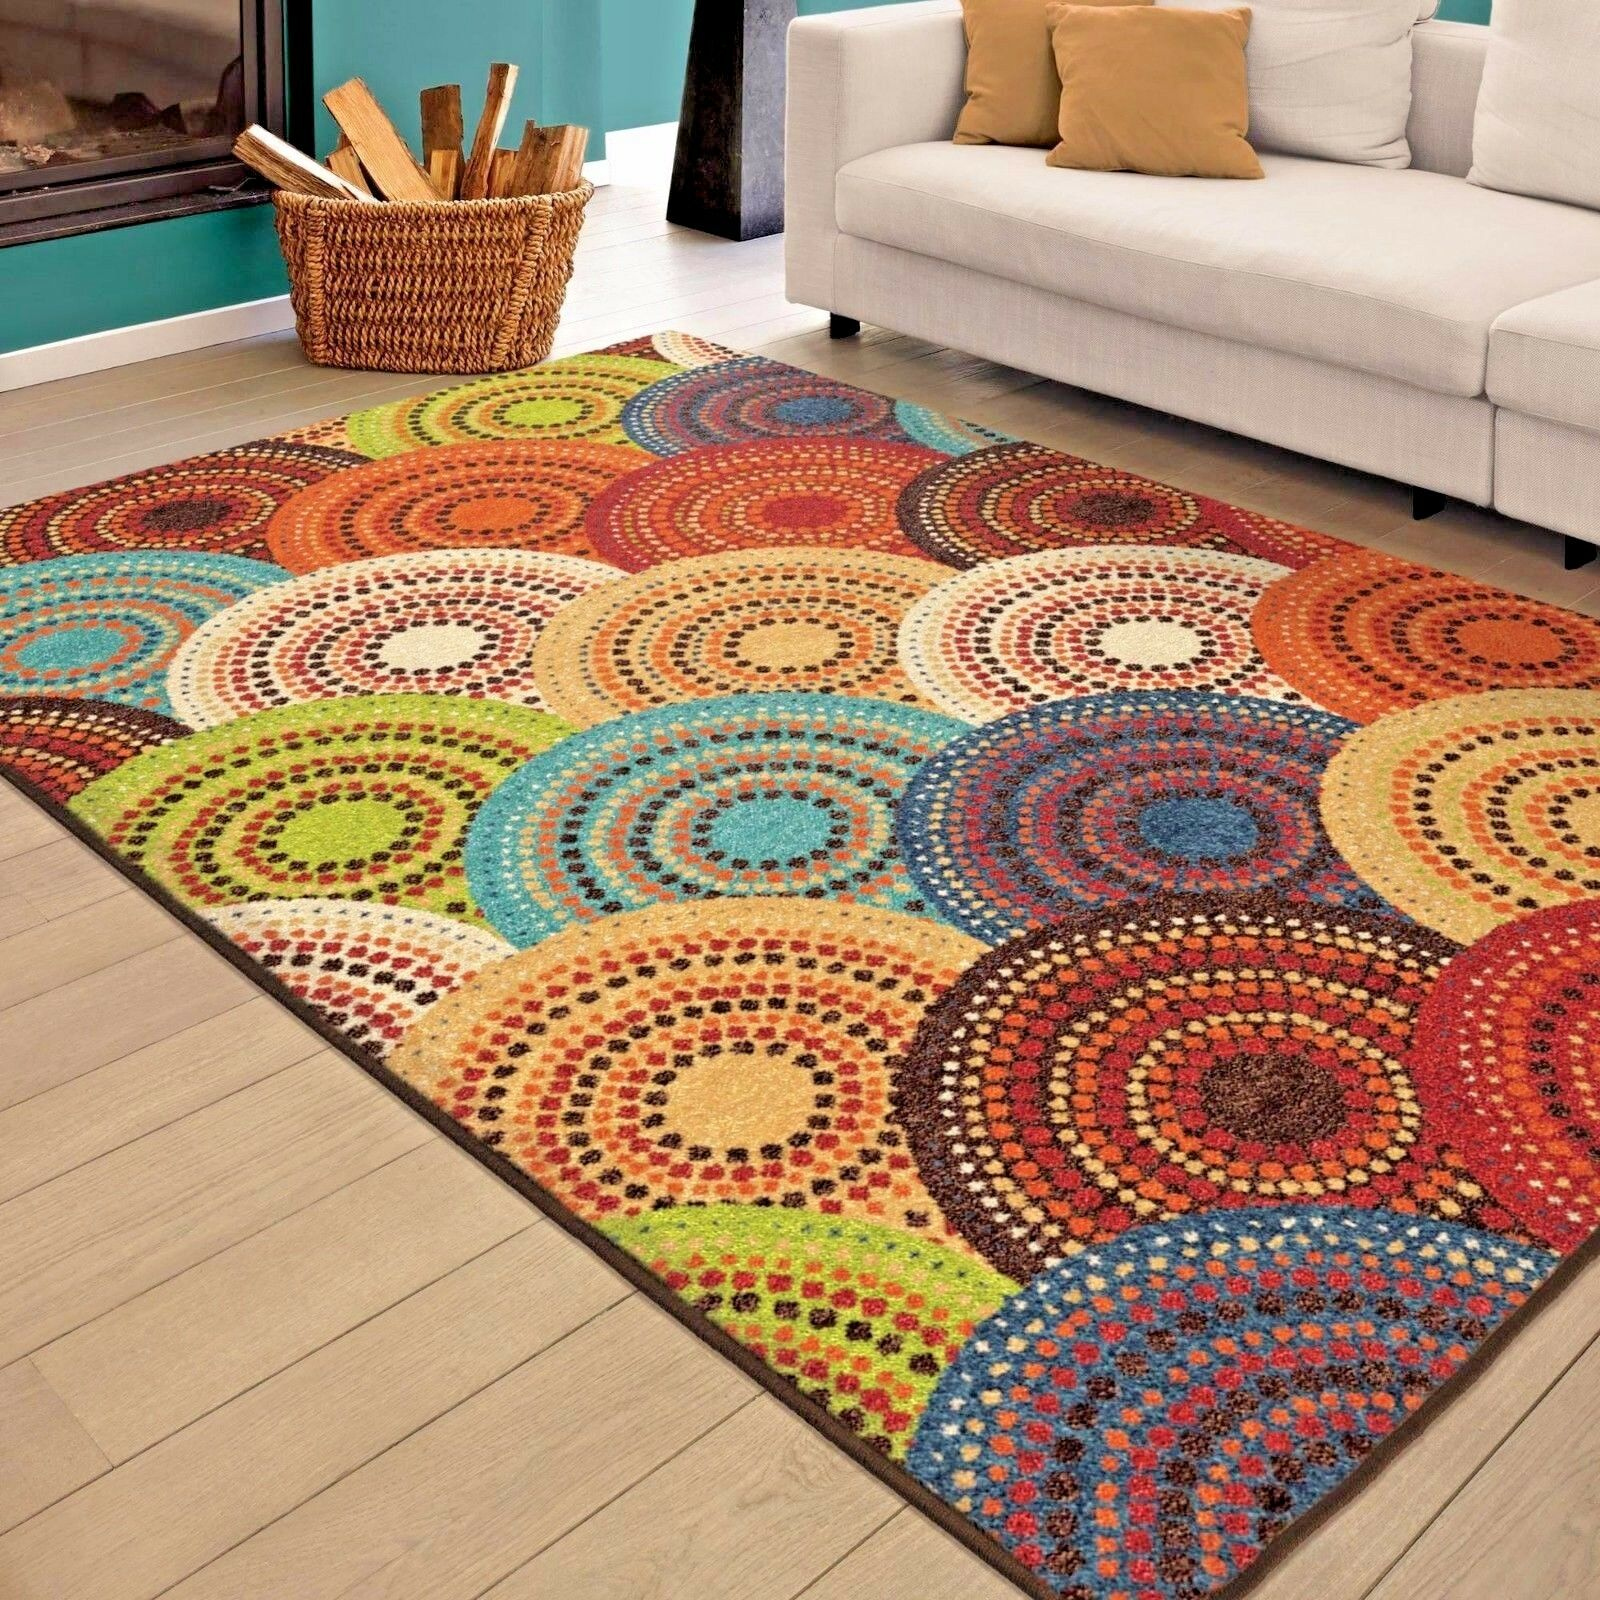 Rugs area rugs carpet 8x10 area rug floor modern colorful large big cool rugs